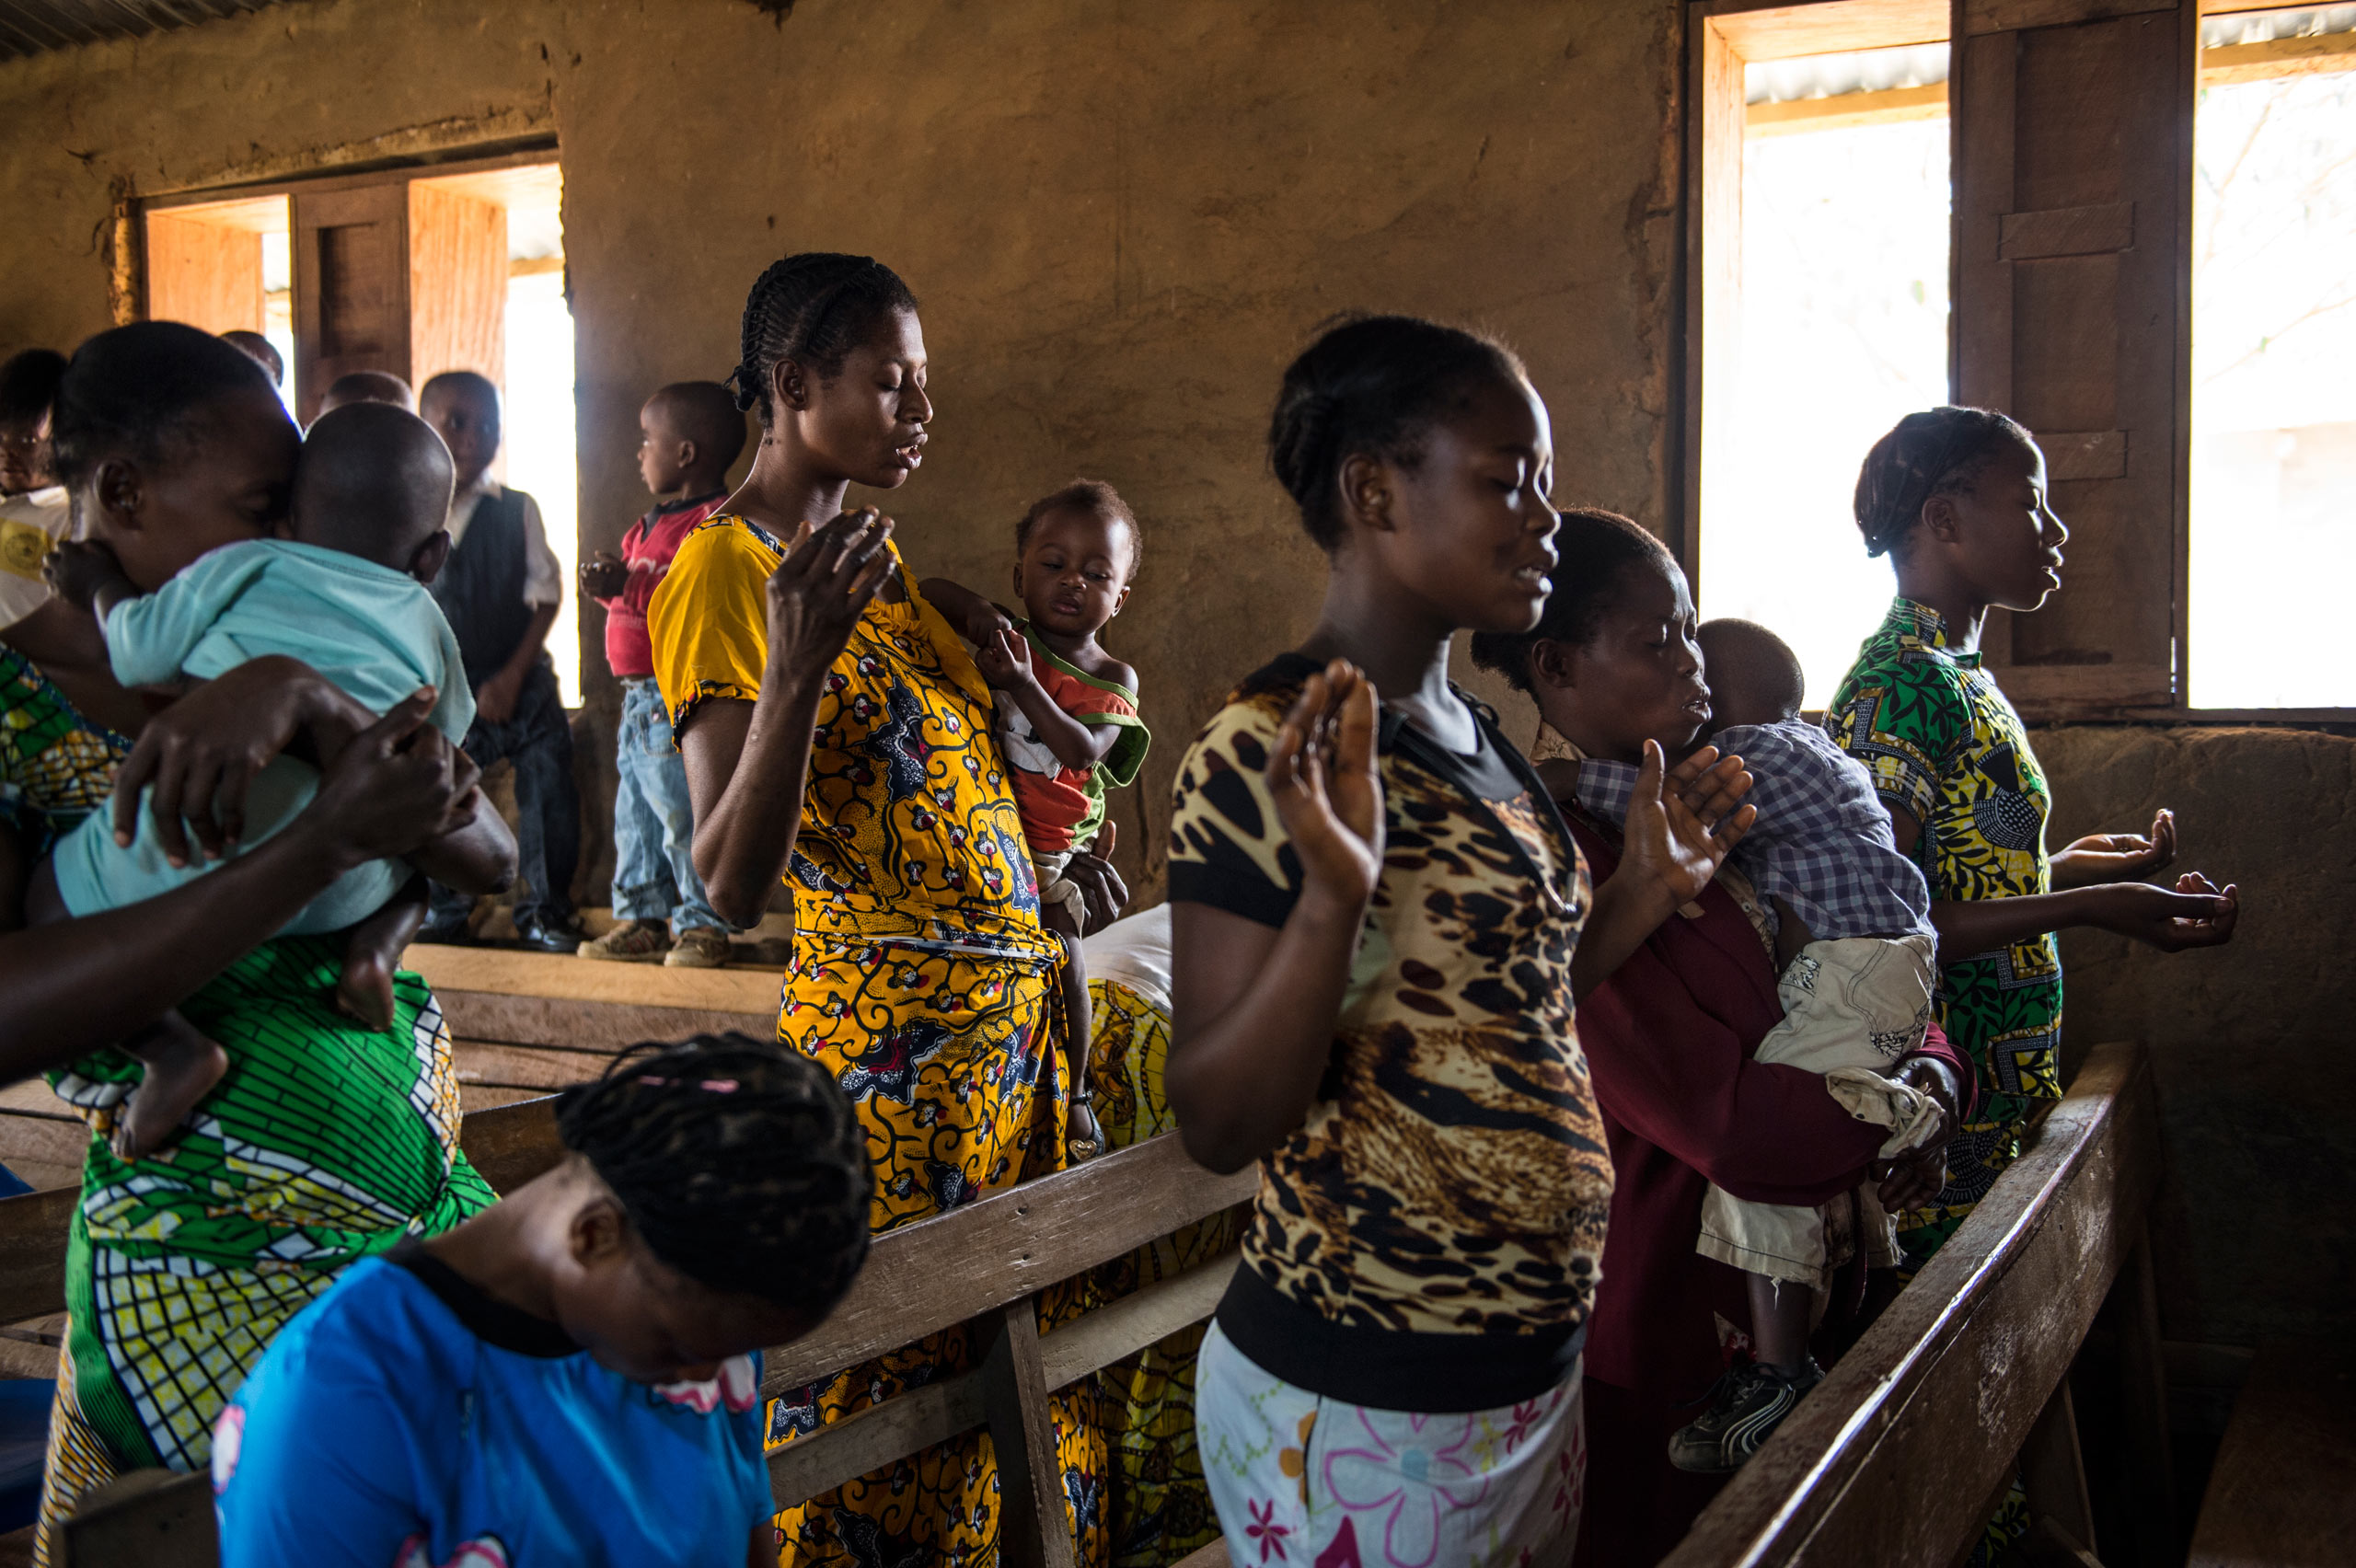 Families attend Sunday church mass in Kamabue, in the heart of Congo's diamond-mining region. Aug. 9, 2015.